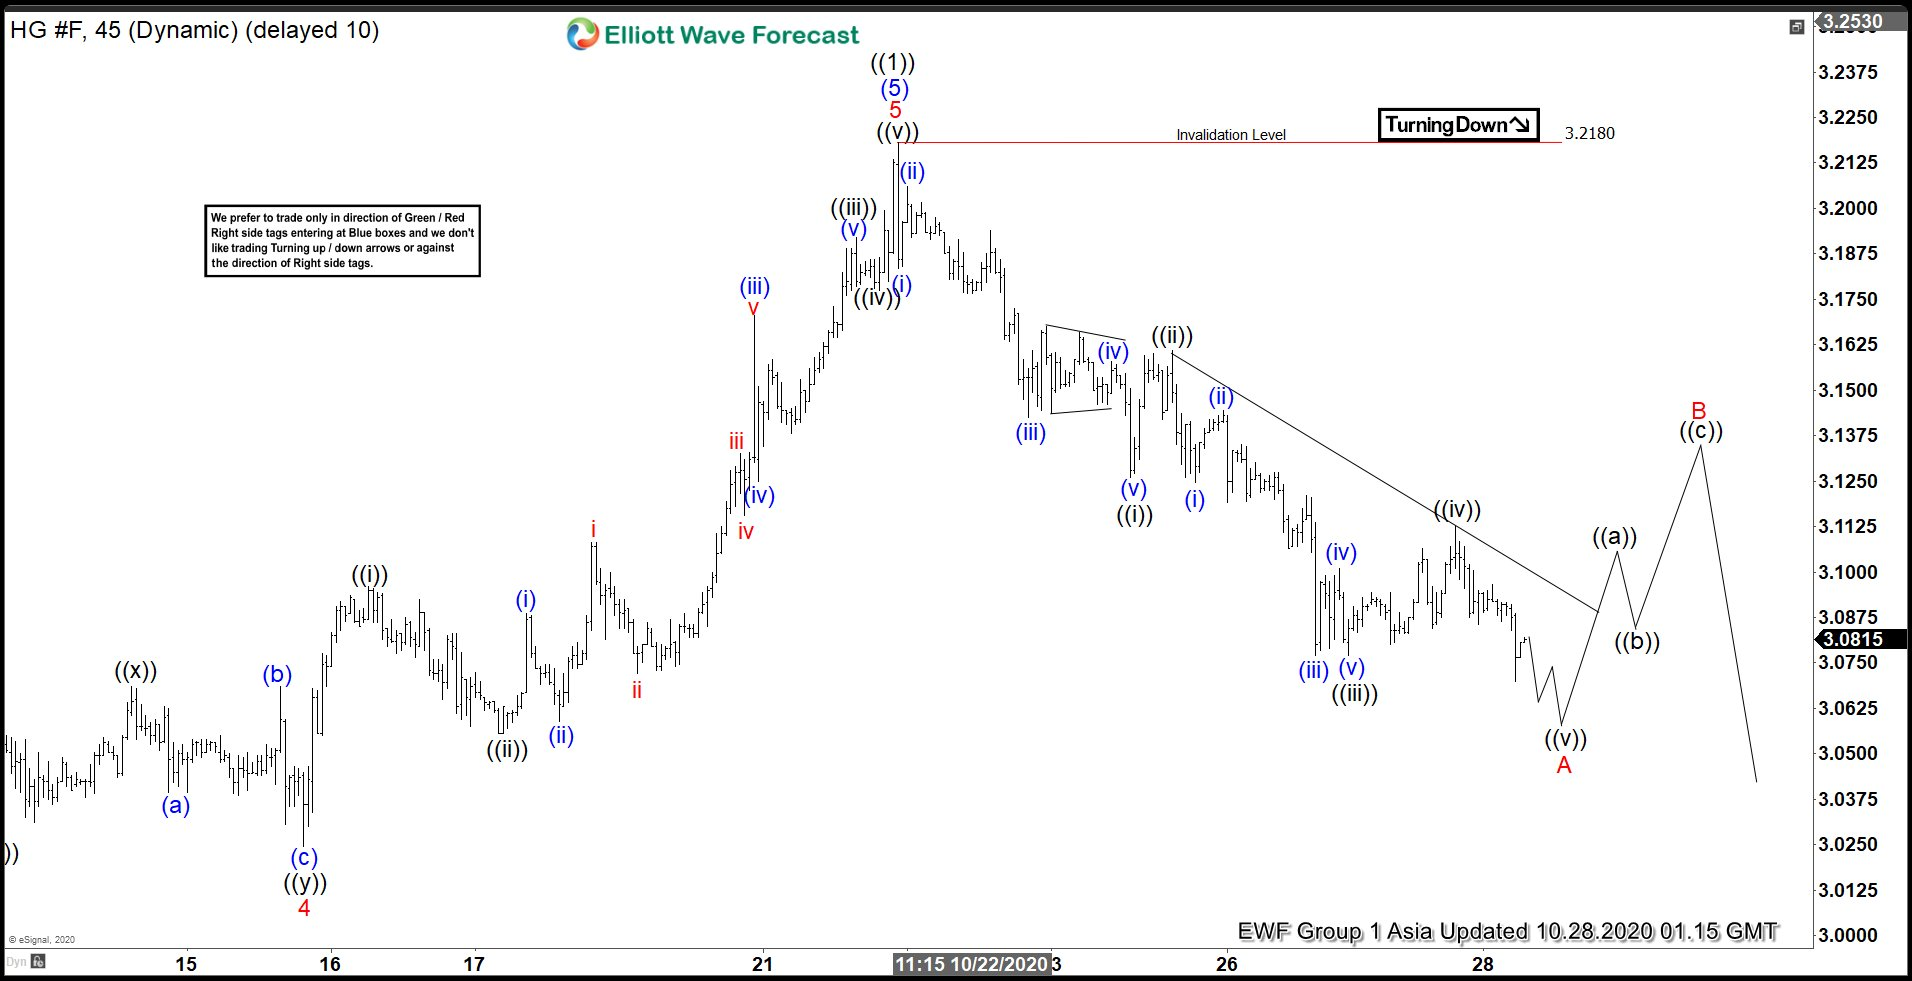 Elliott Wave View: Copper (HG) Correction in Progress